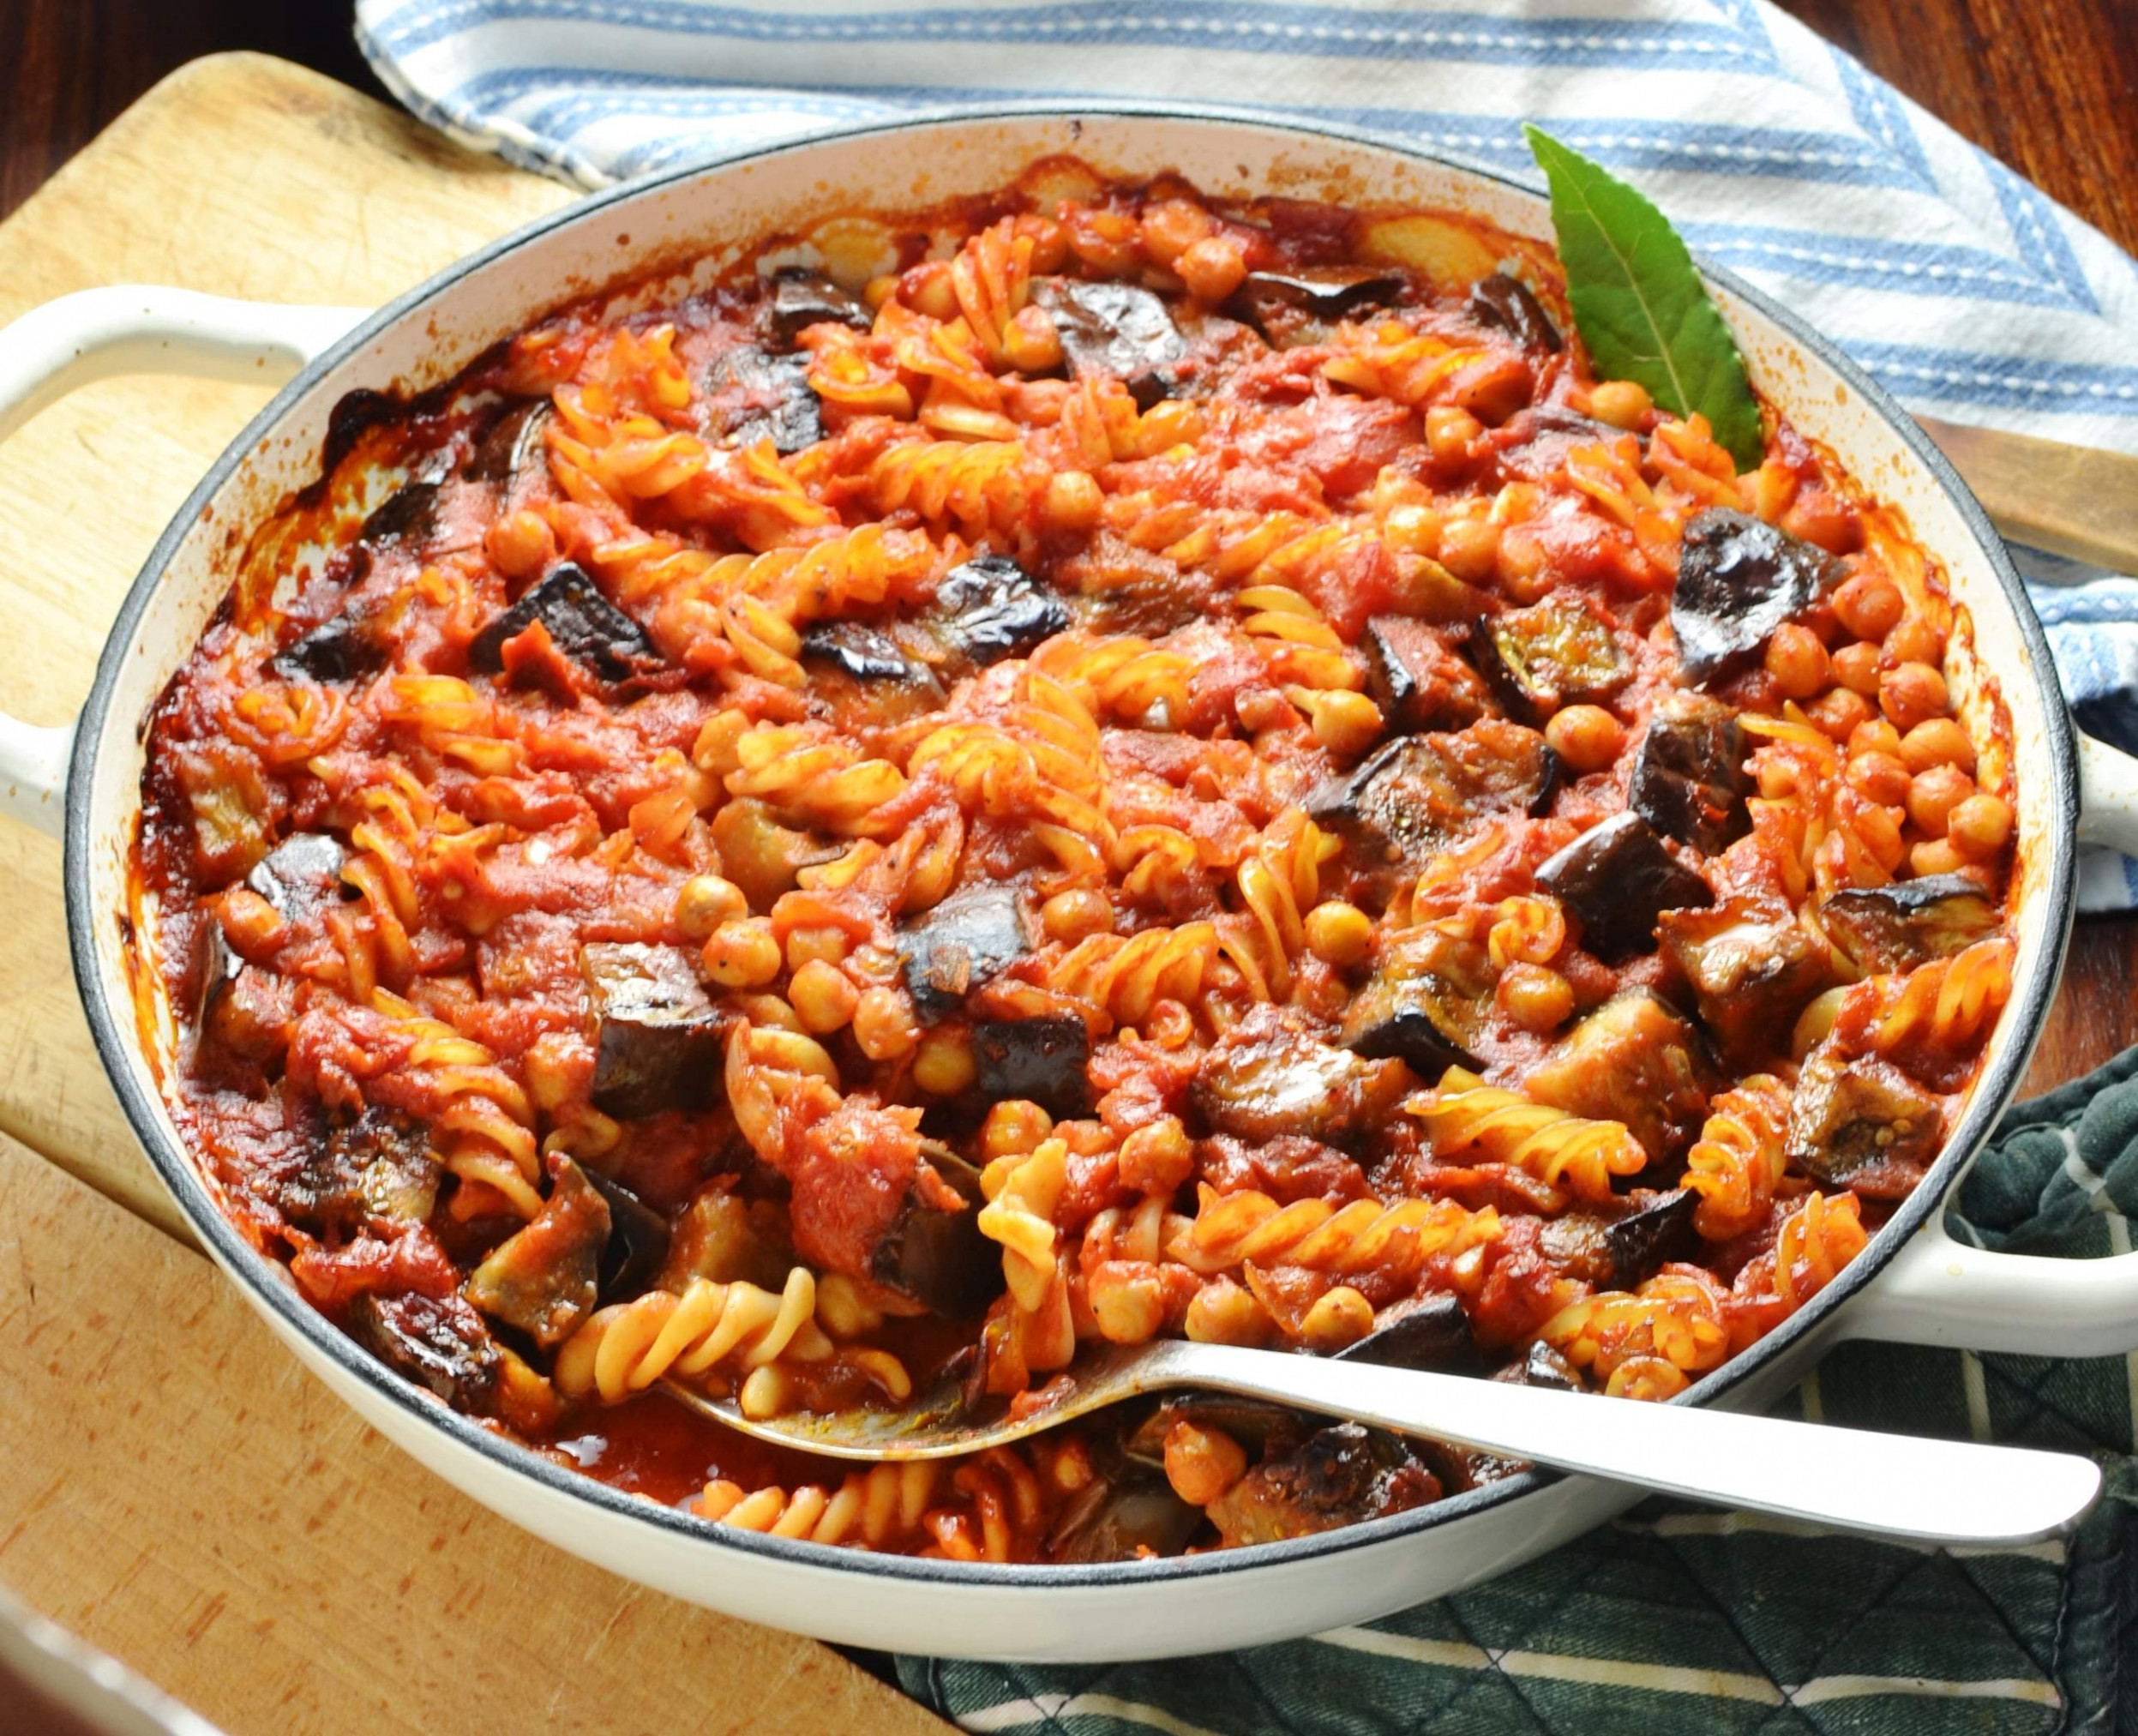 Easy Eggplant Pasta Bake with Chickpeas